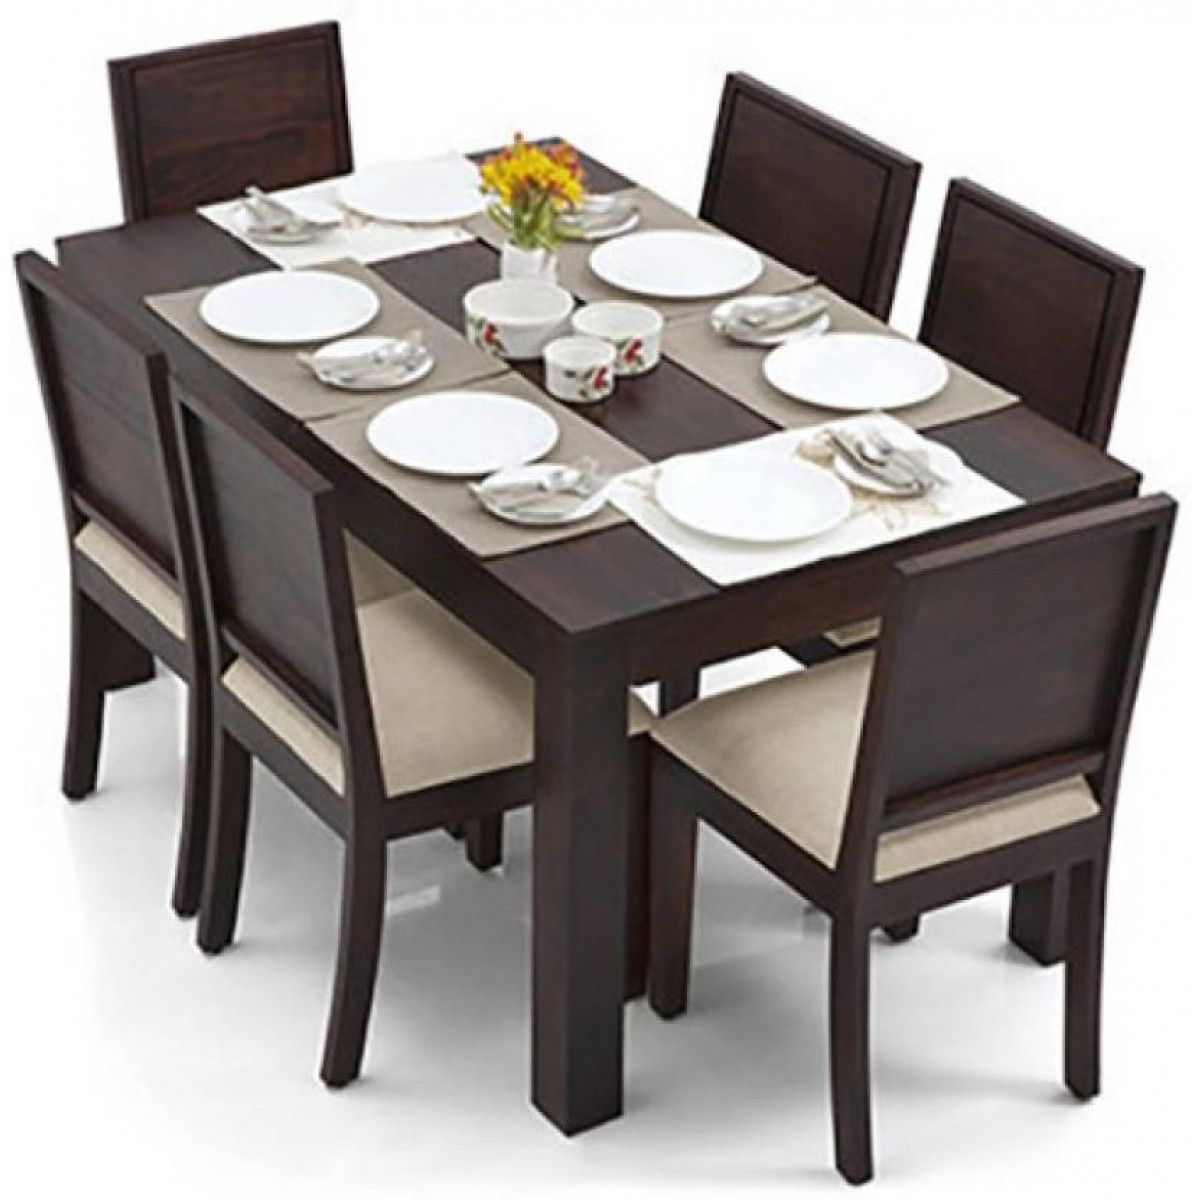 Gorevizon Oribi Bench Wood Dining Table Set Finish Color Teak